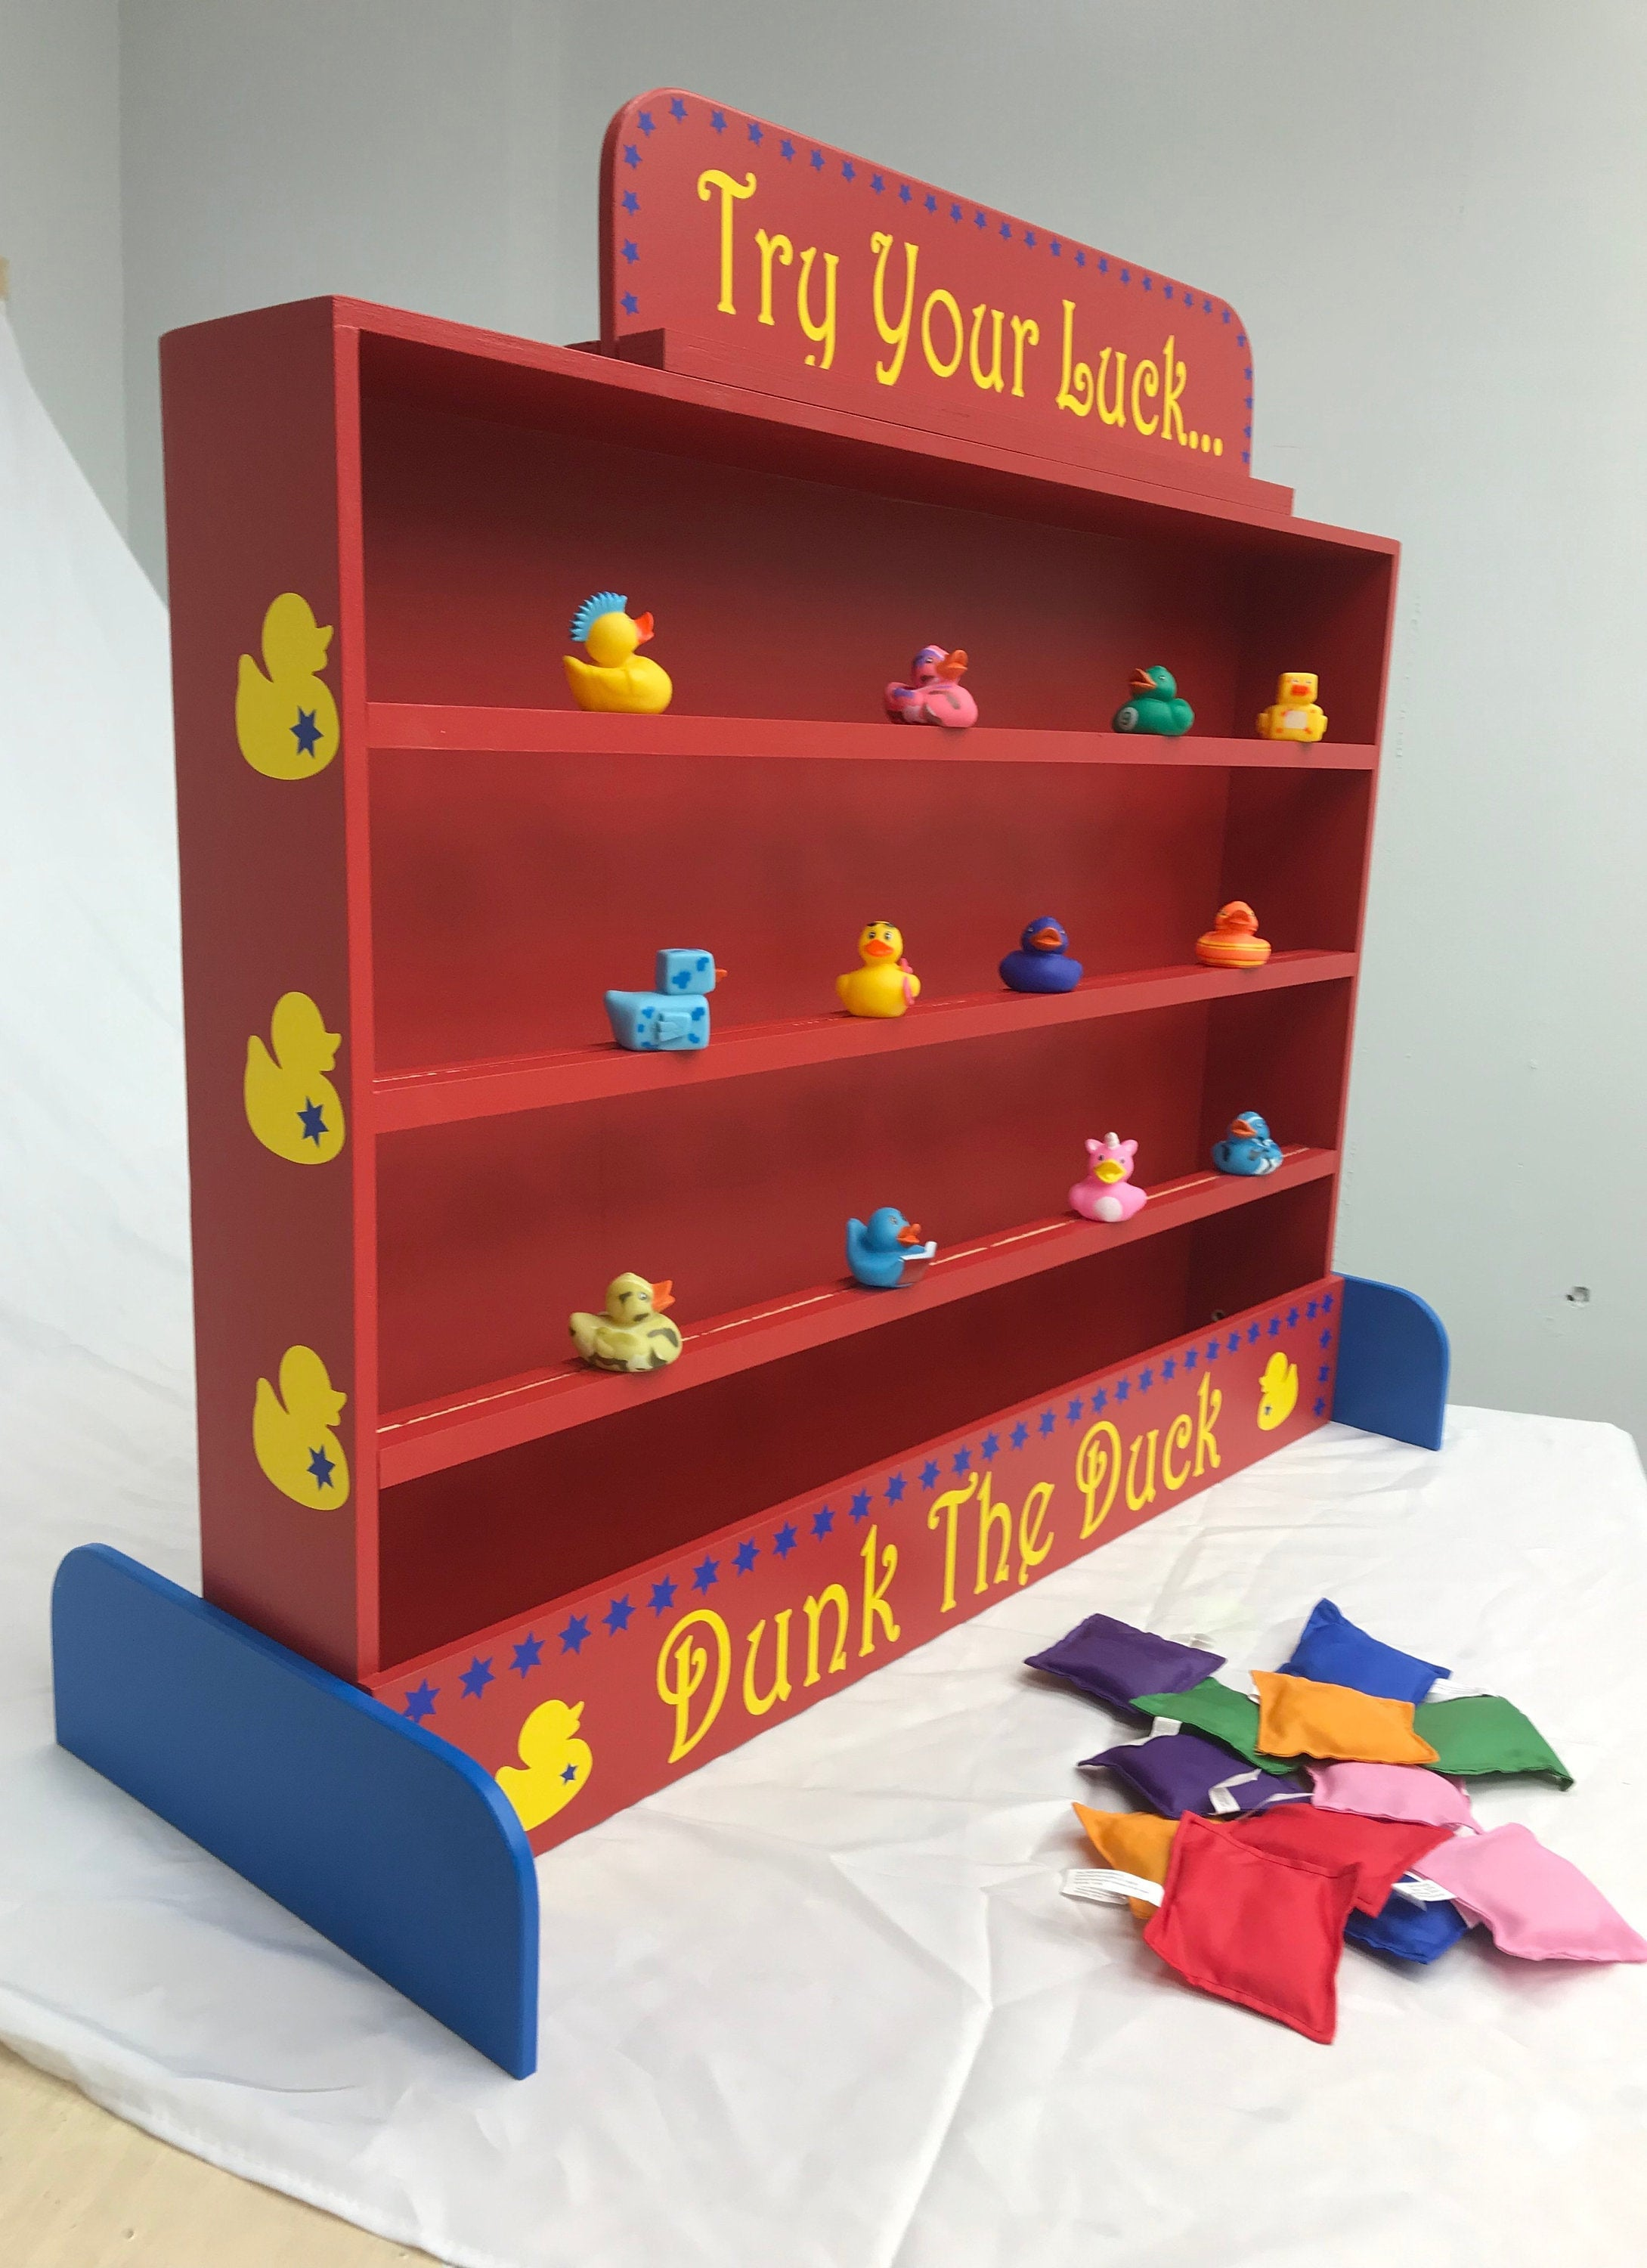 Target Gallery Duck Shooting Gallery Dunk A Duck Game Lawn Game Carnival Games Backyard Game Carnival Booth Games Birthday Party Game